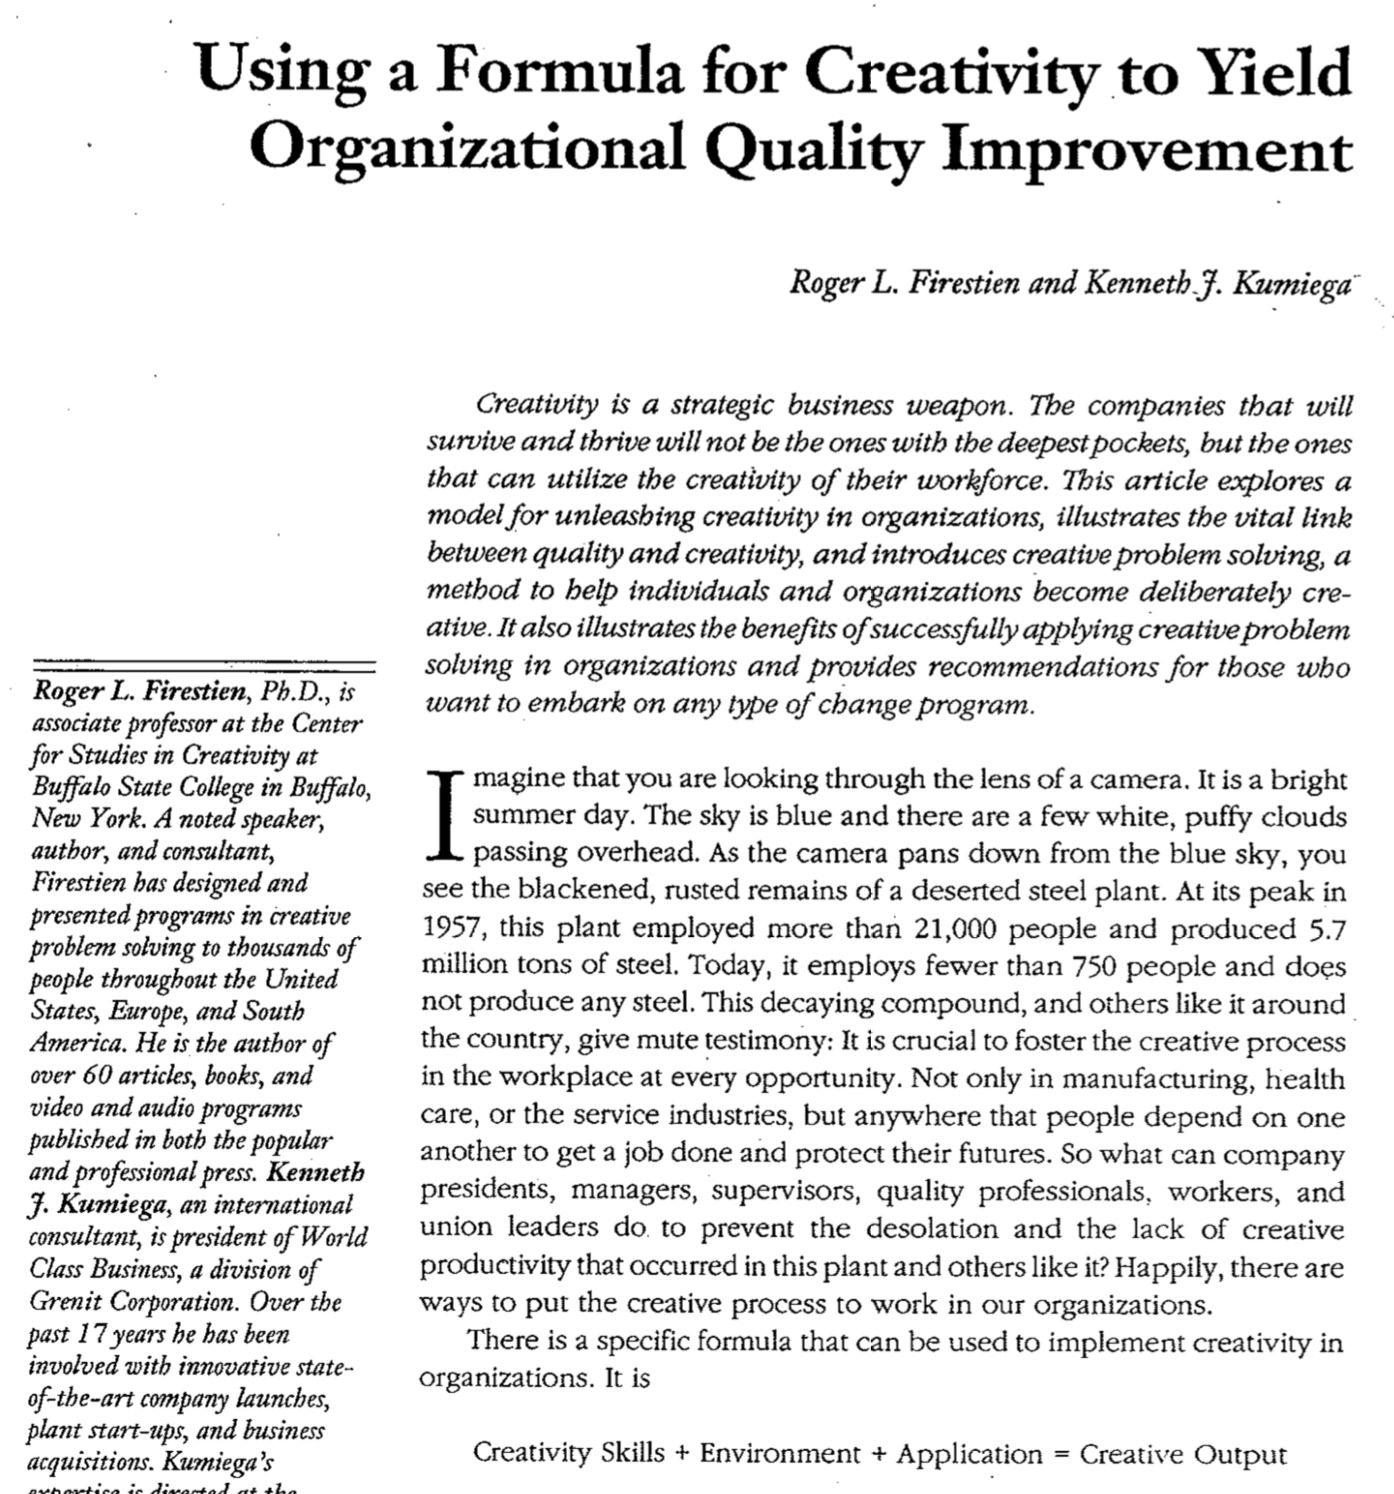 Using a Formula for Creativity to Yield Organizational Quality Improvement